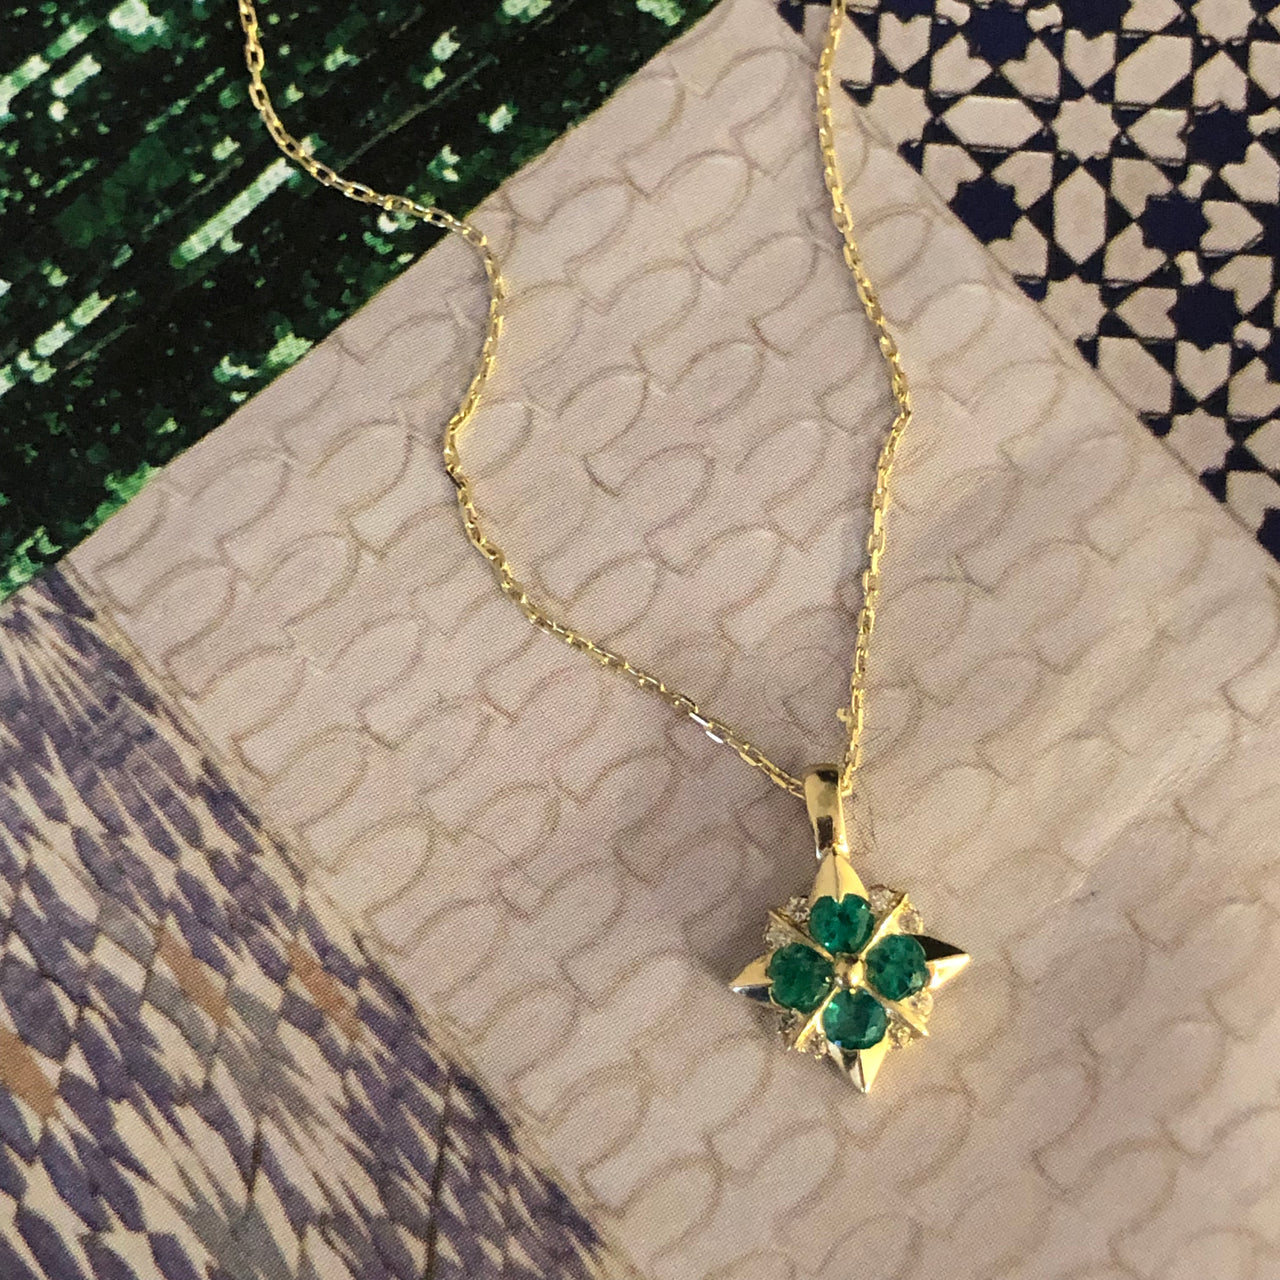 14K Yellow Gold Small Plique Emerald and Diamond Pendant.